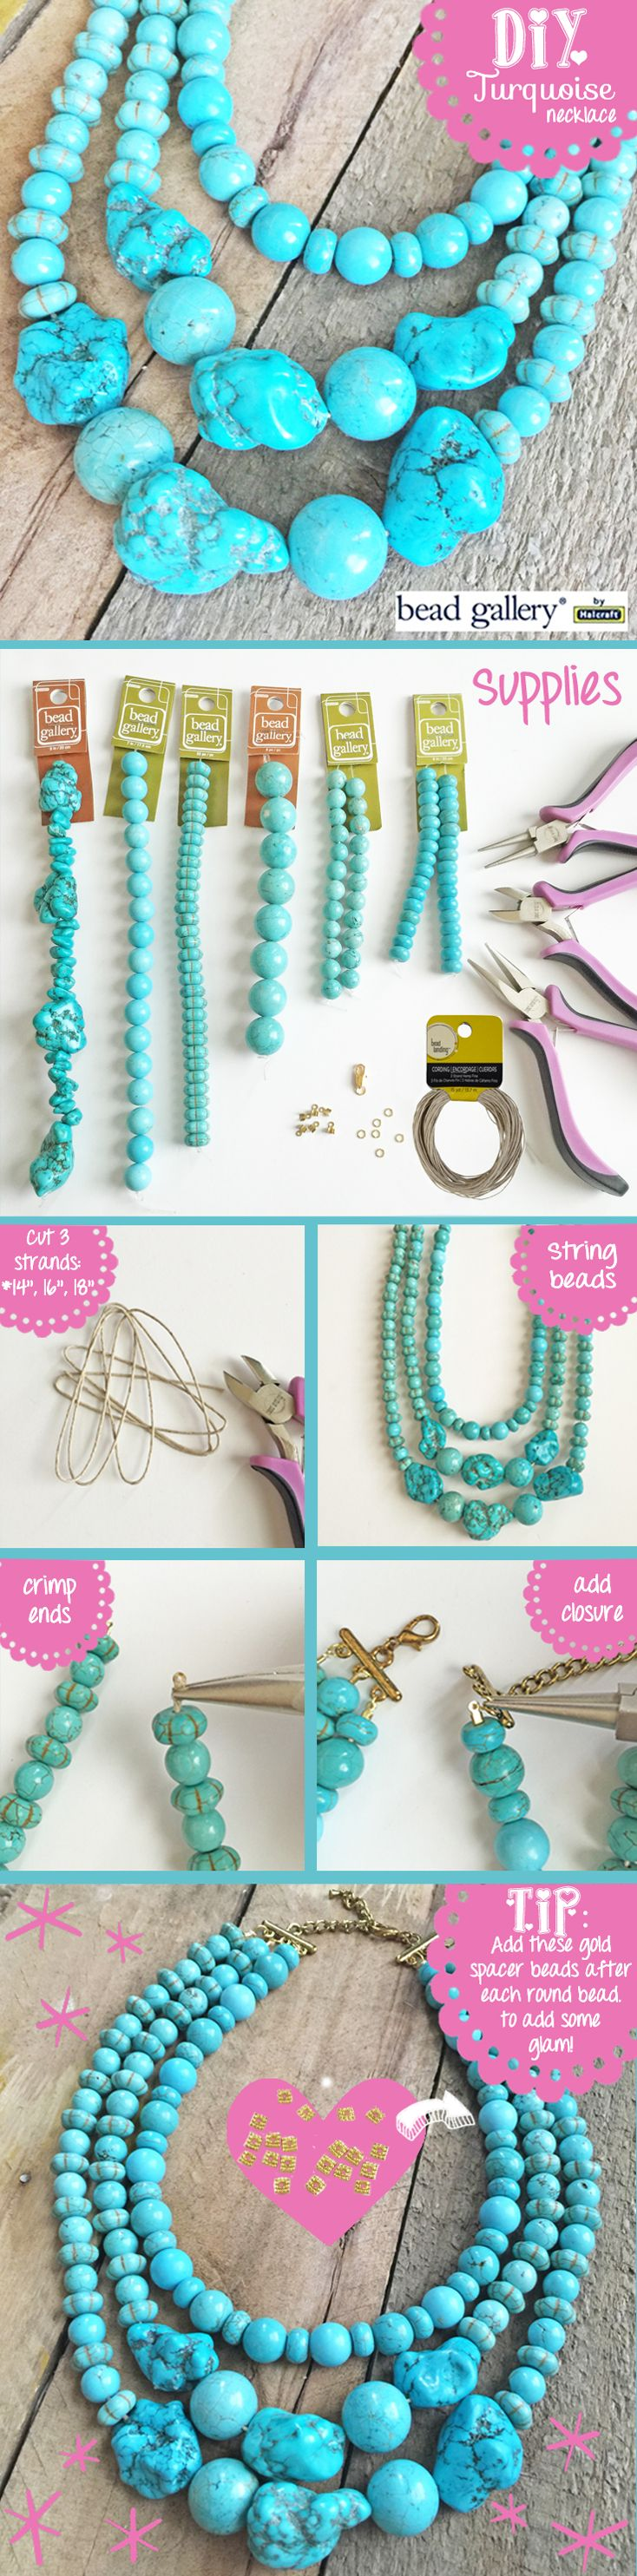 #DIY #Turquoise Necklace made with #BeadGallery beads available at @Michaels